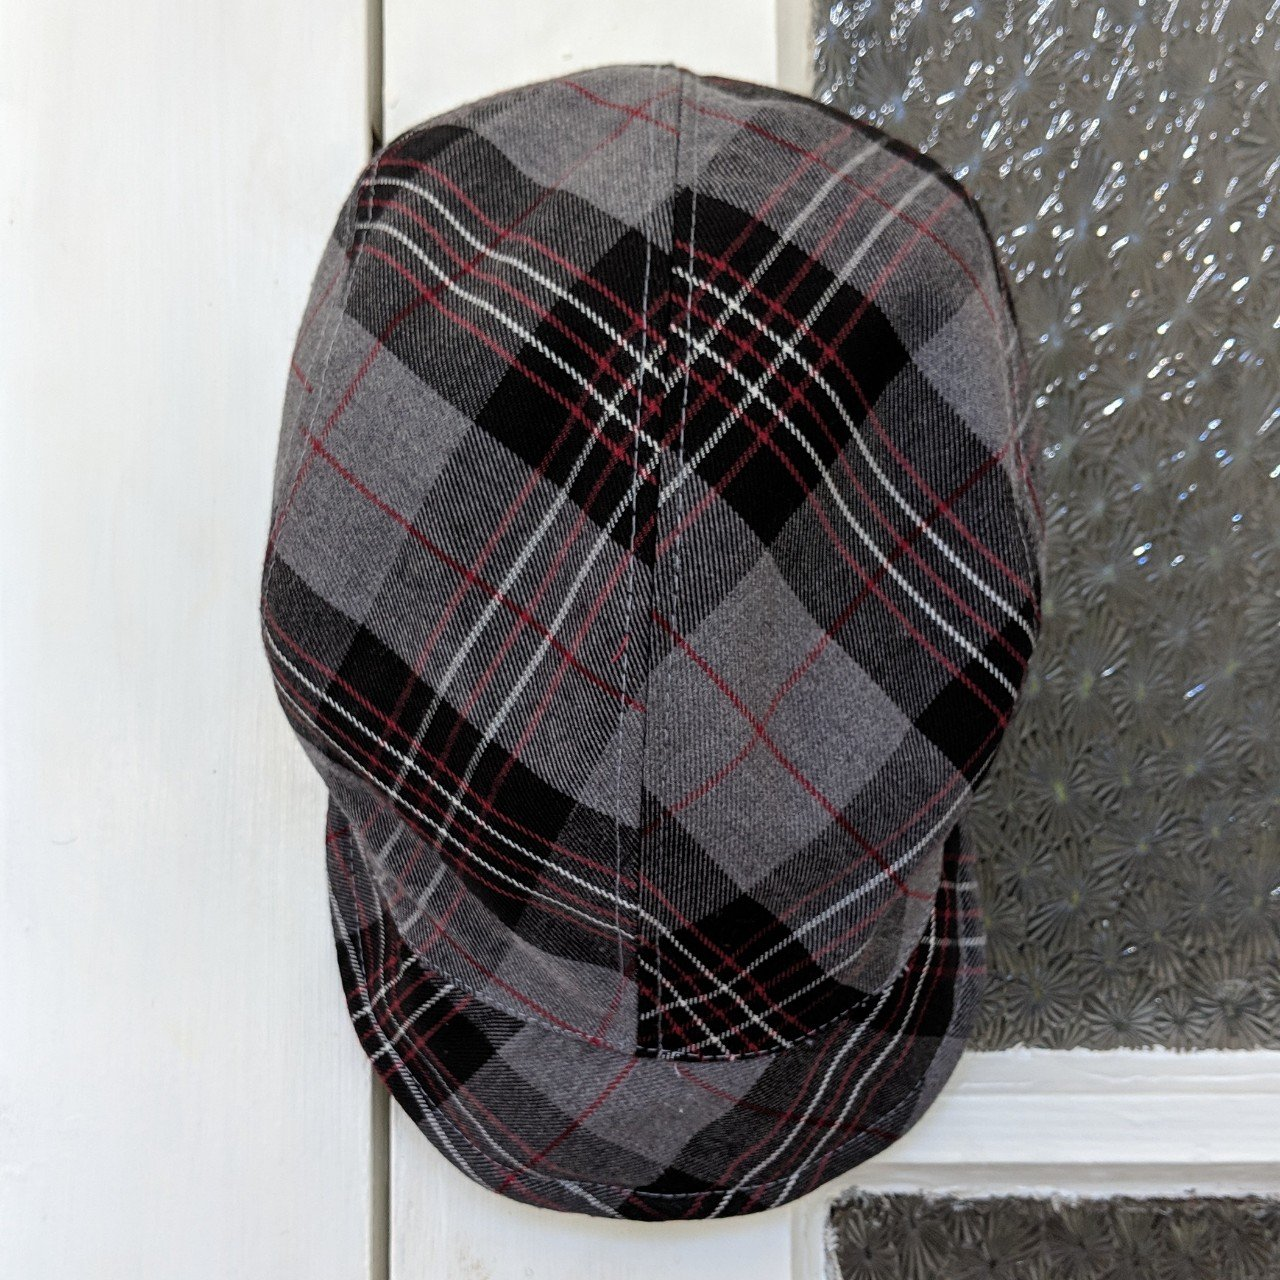 CHRISTY S crown series grandma grey red and black plaid will - Depop ad9730643f2